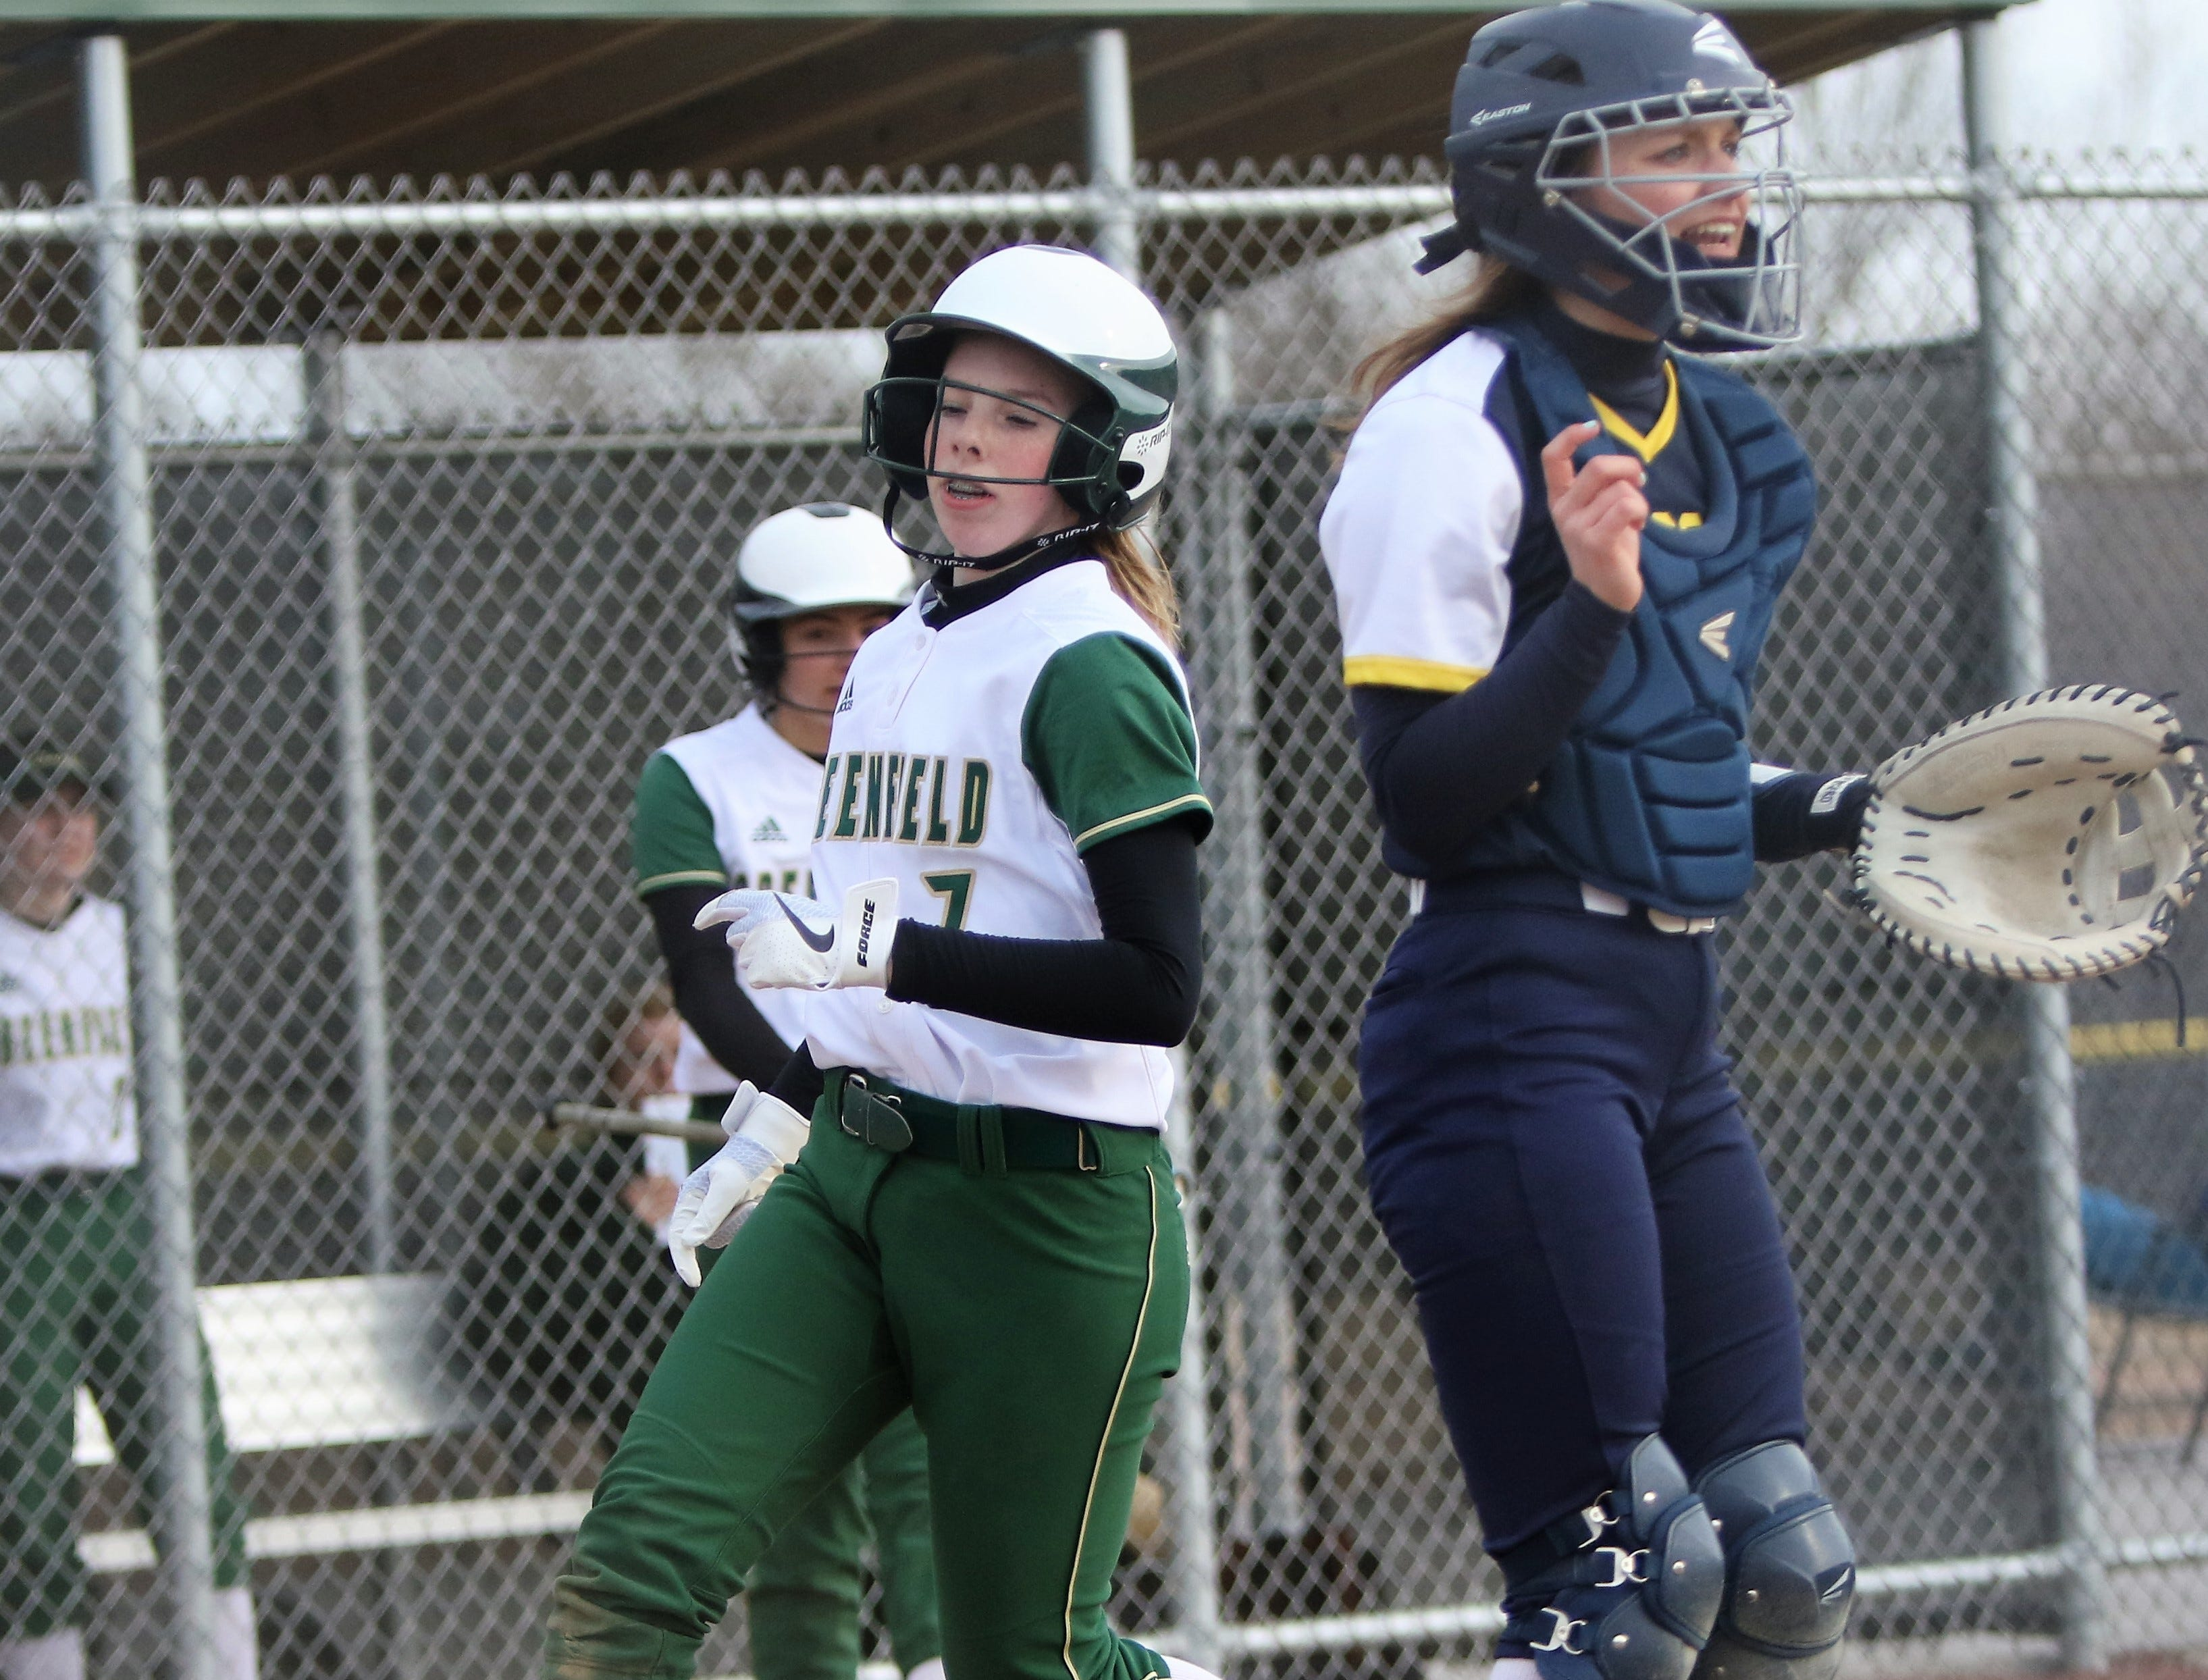 Greenfield's Courtney Bunnow crosses the plate with a run in a game against Whitnall on April 3, 2019.